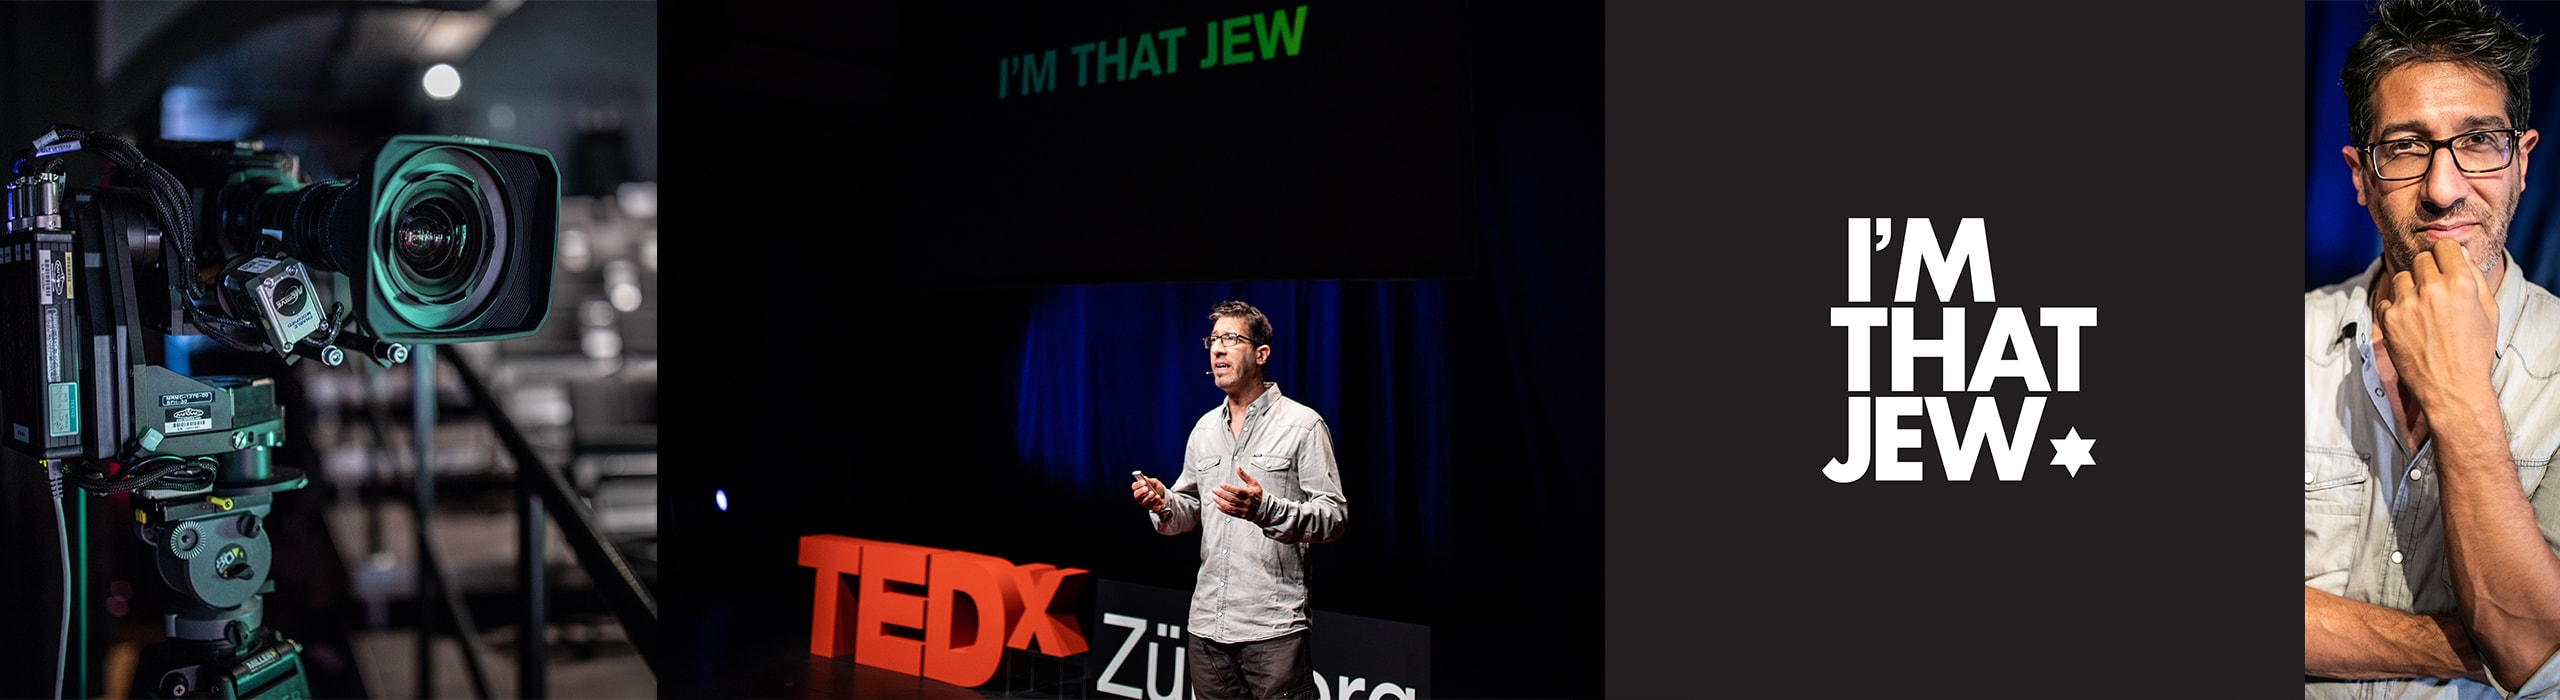 A TEDx talk by Eitan - tedx_5 - Natie Branding Agency